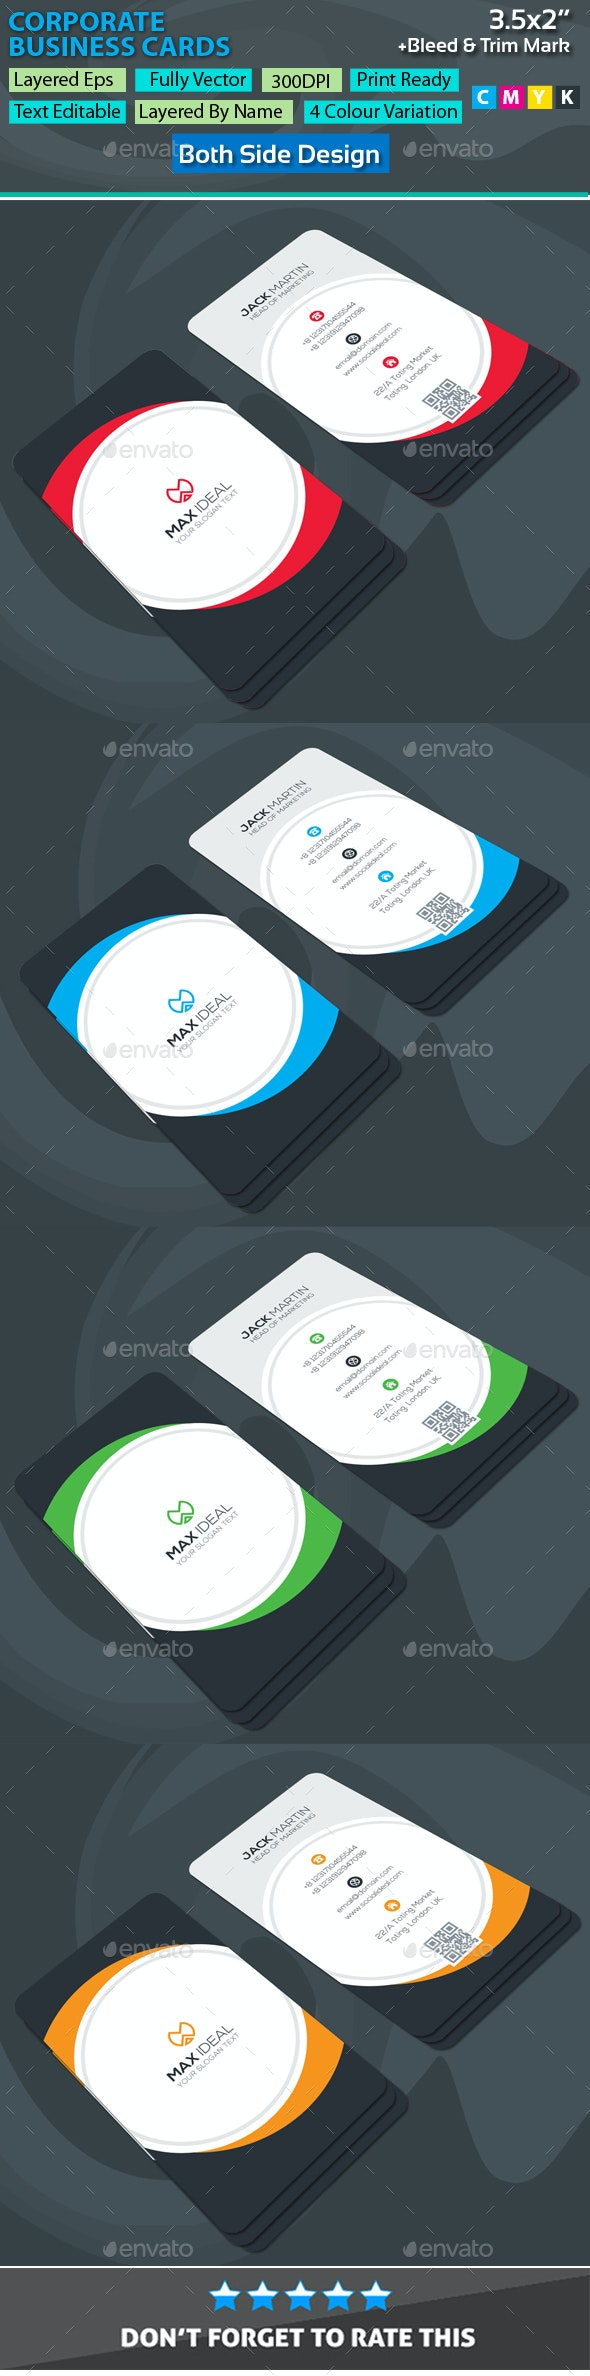 Maxideal Corporate Business Cards - Corporate Business Cards